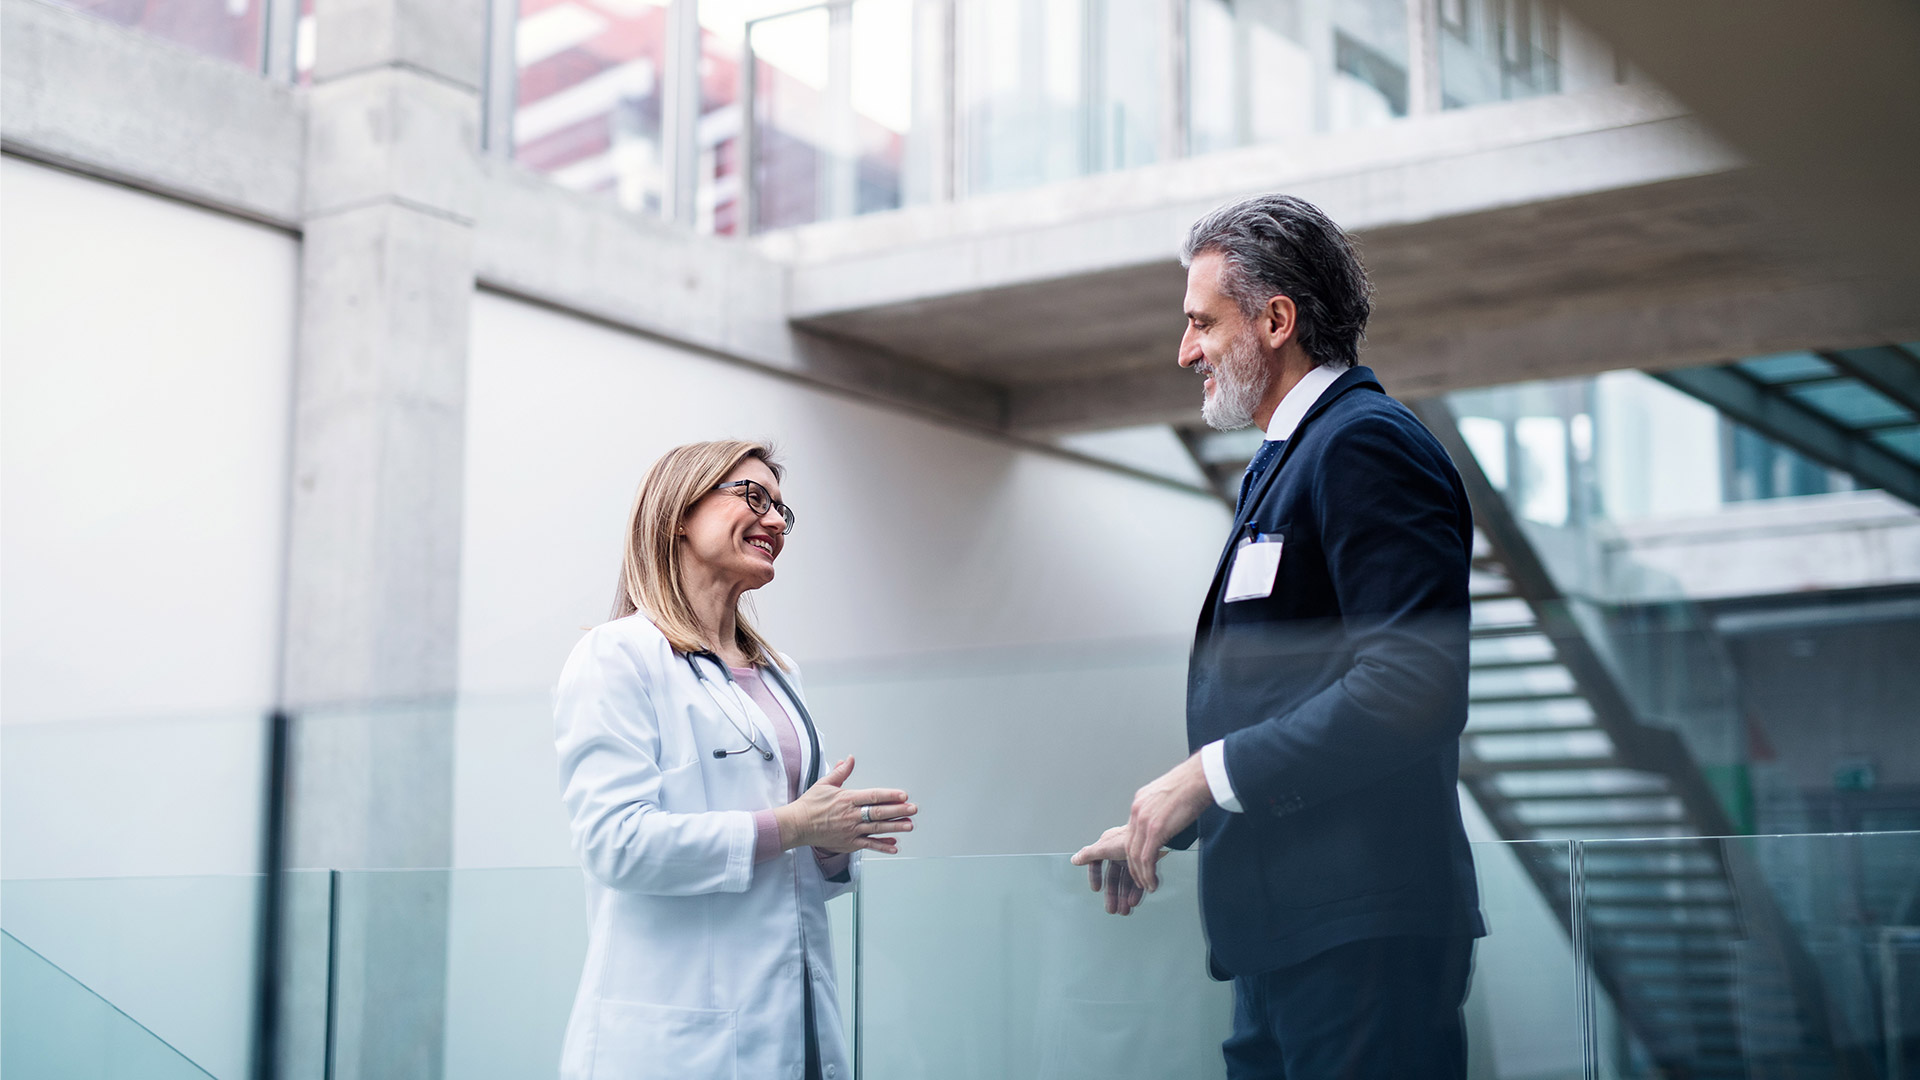 Two healthcare professionals are talking to each other